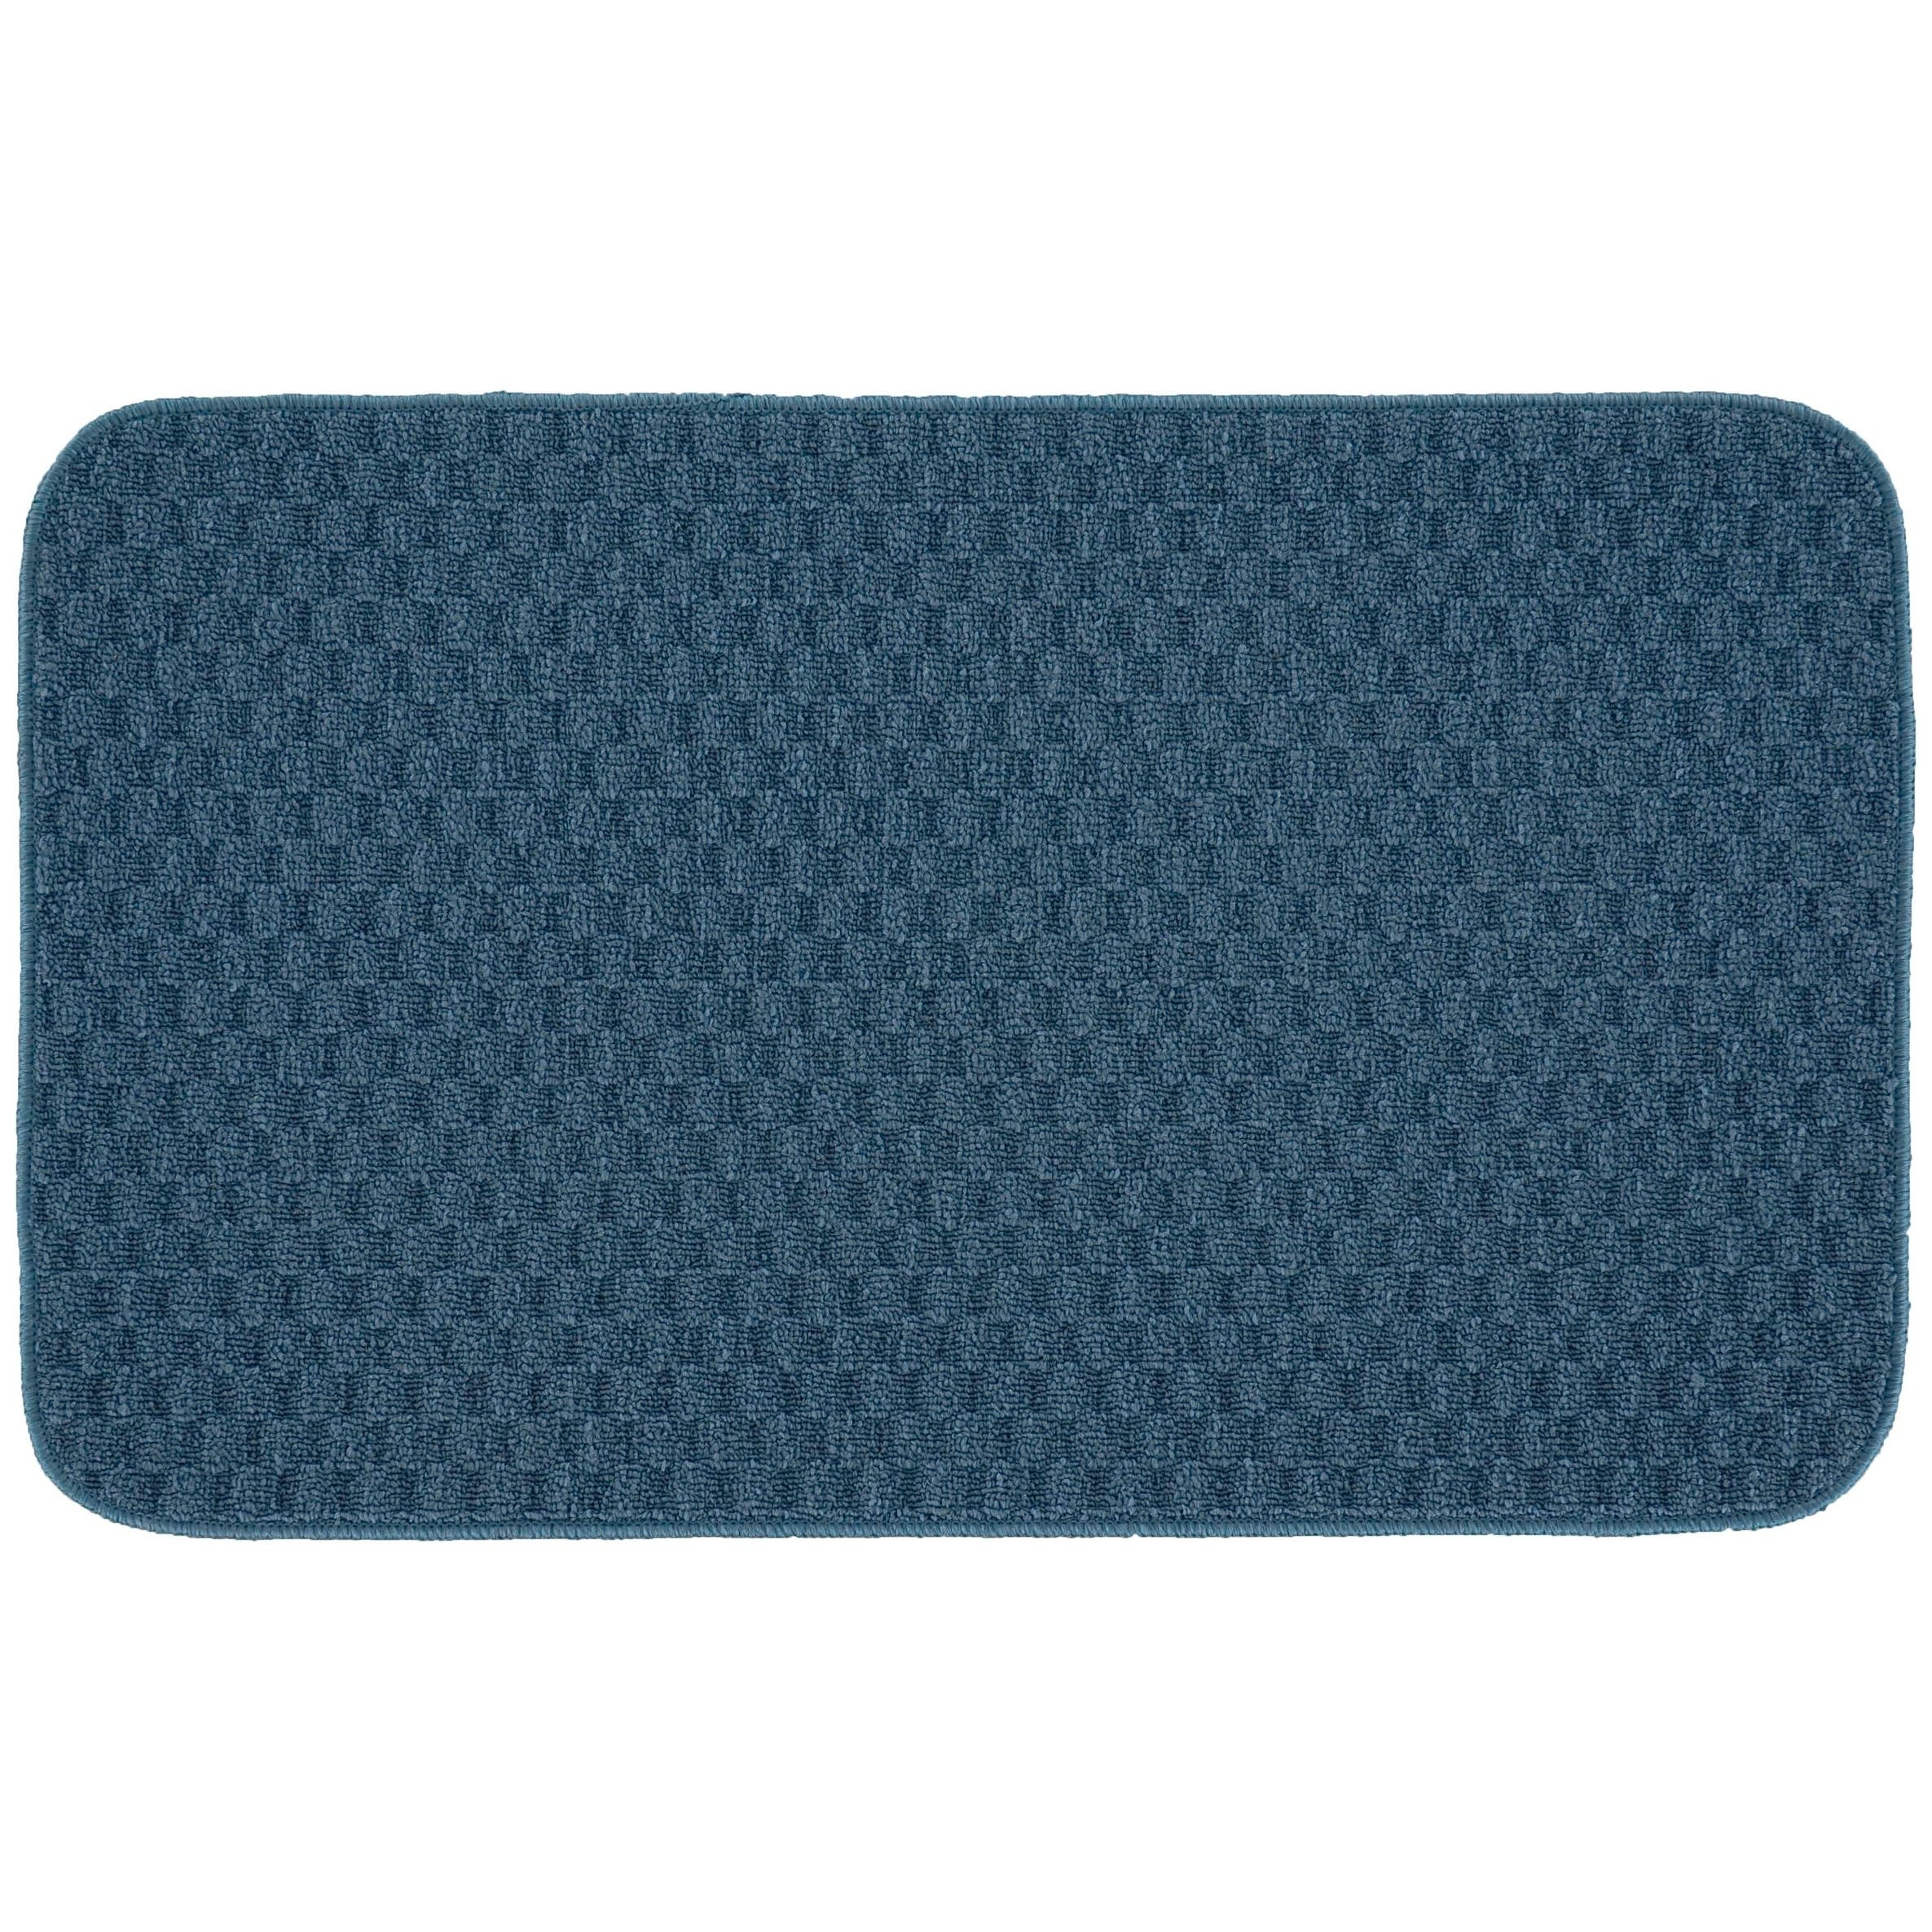 Blue Kitchen Rug: Buy Kitchen Rugs & Mats Online At Overstock